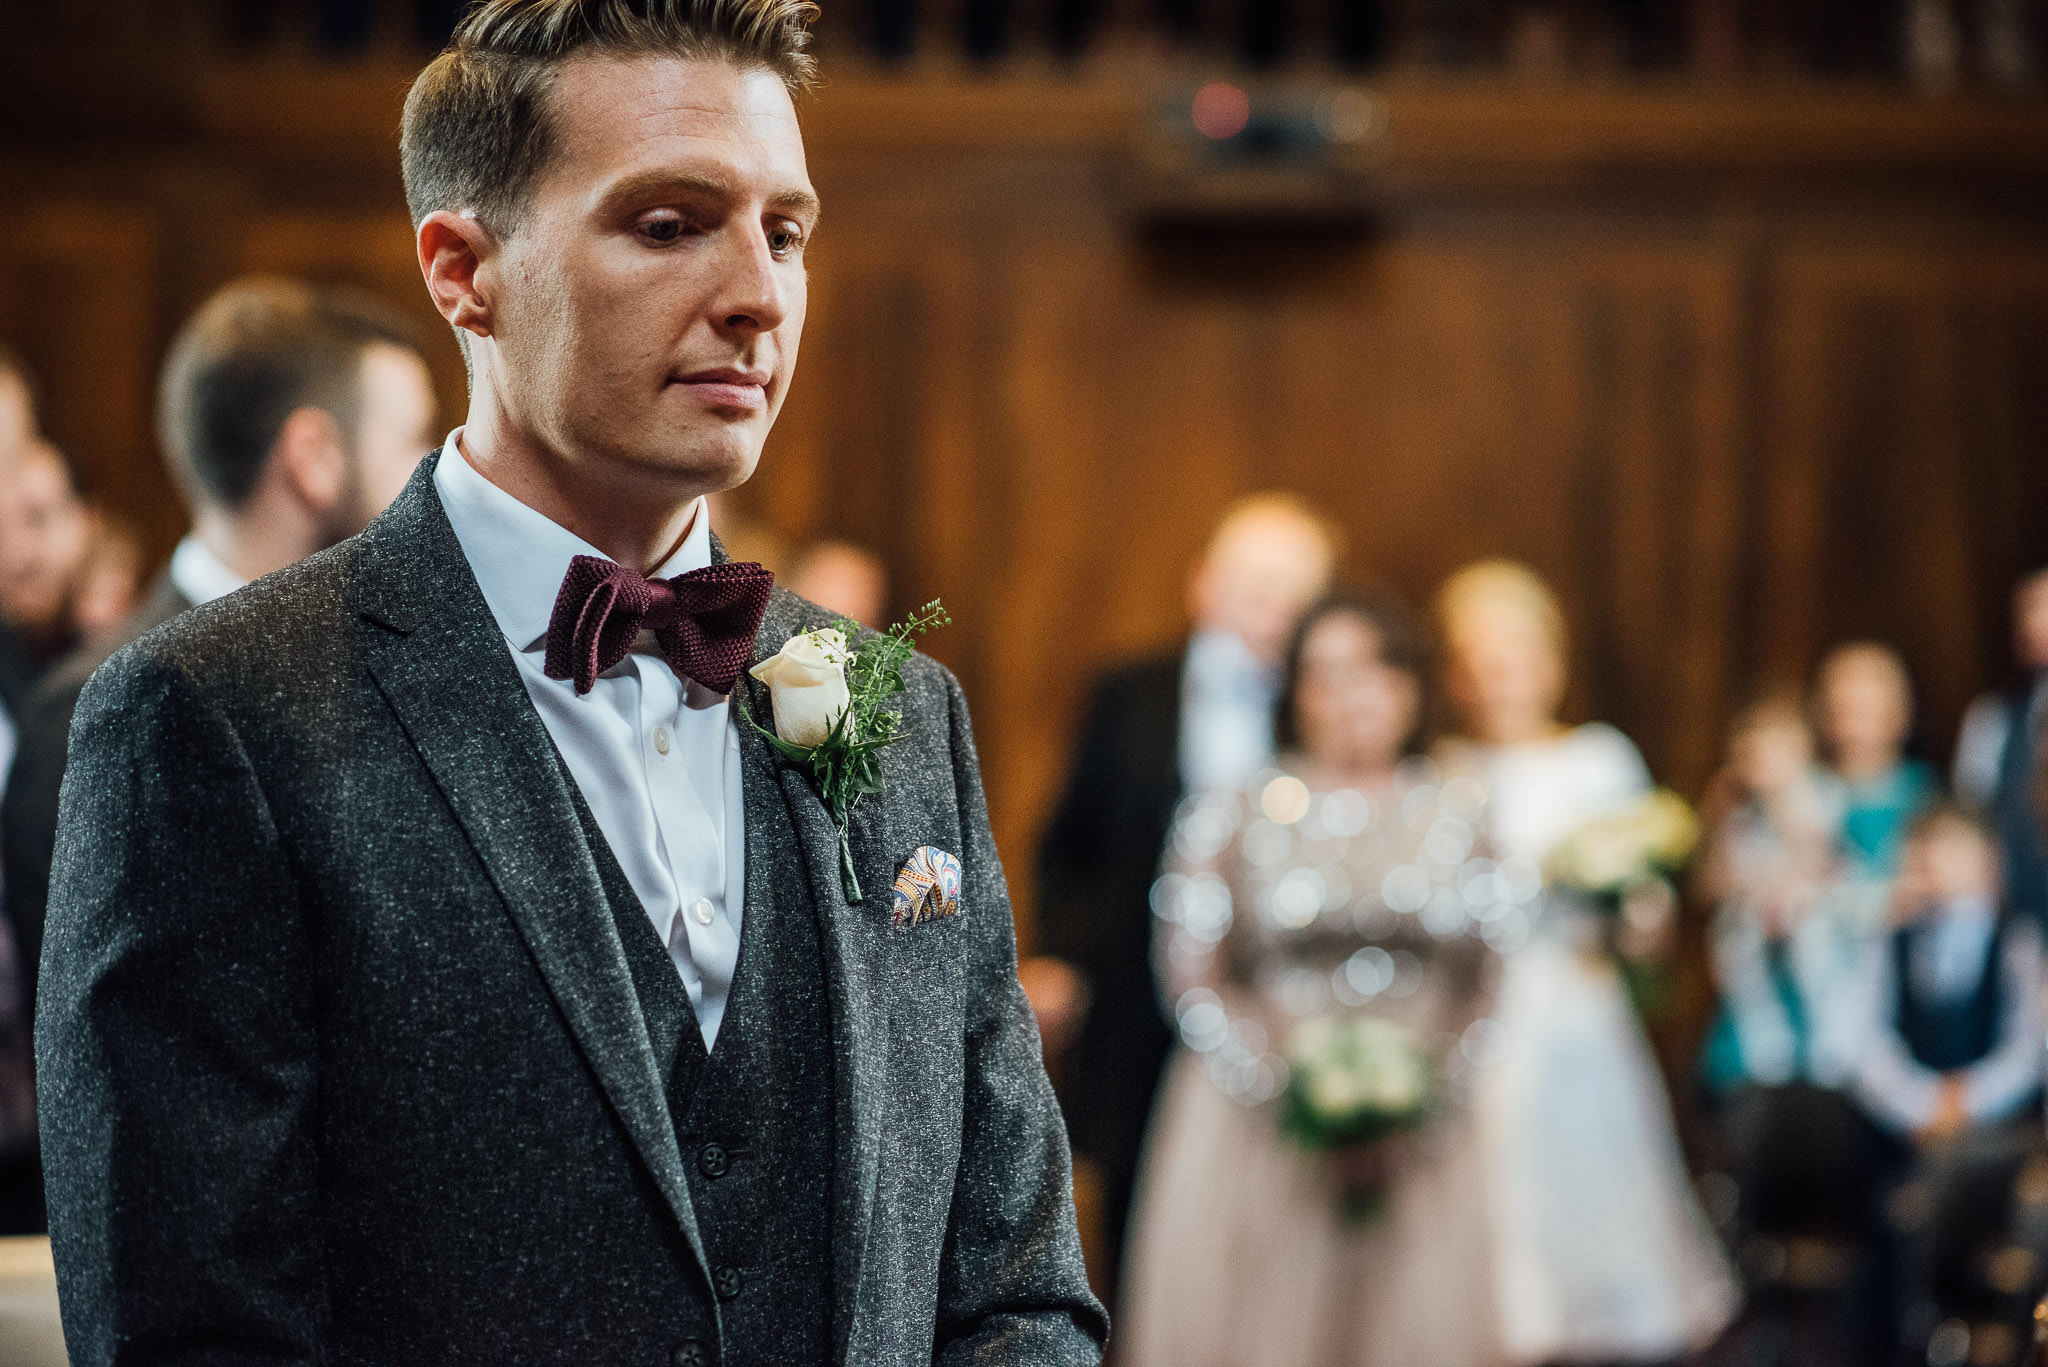 Bride walking down aisle in stoke newington town hall wedding by creative and alternative london wedding photographer the shannons photography